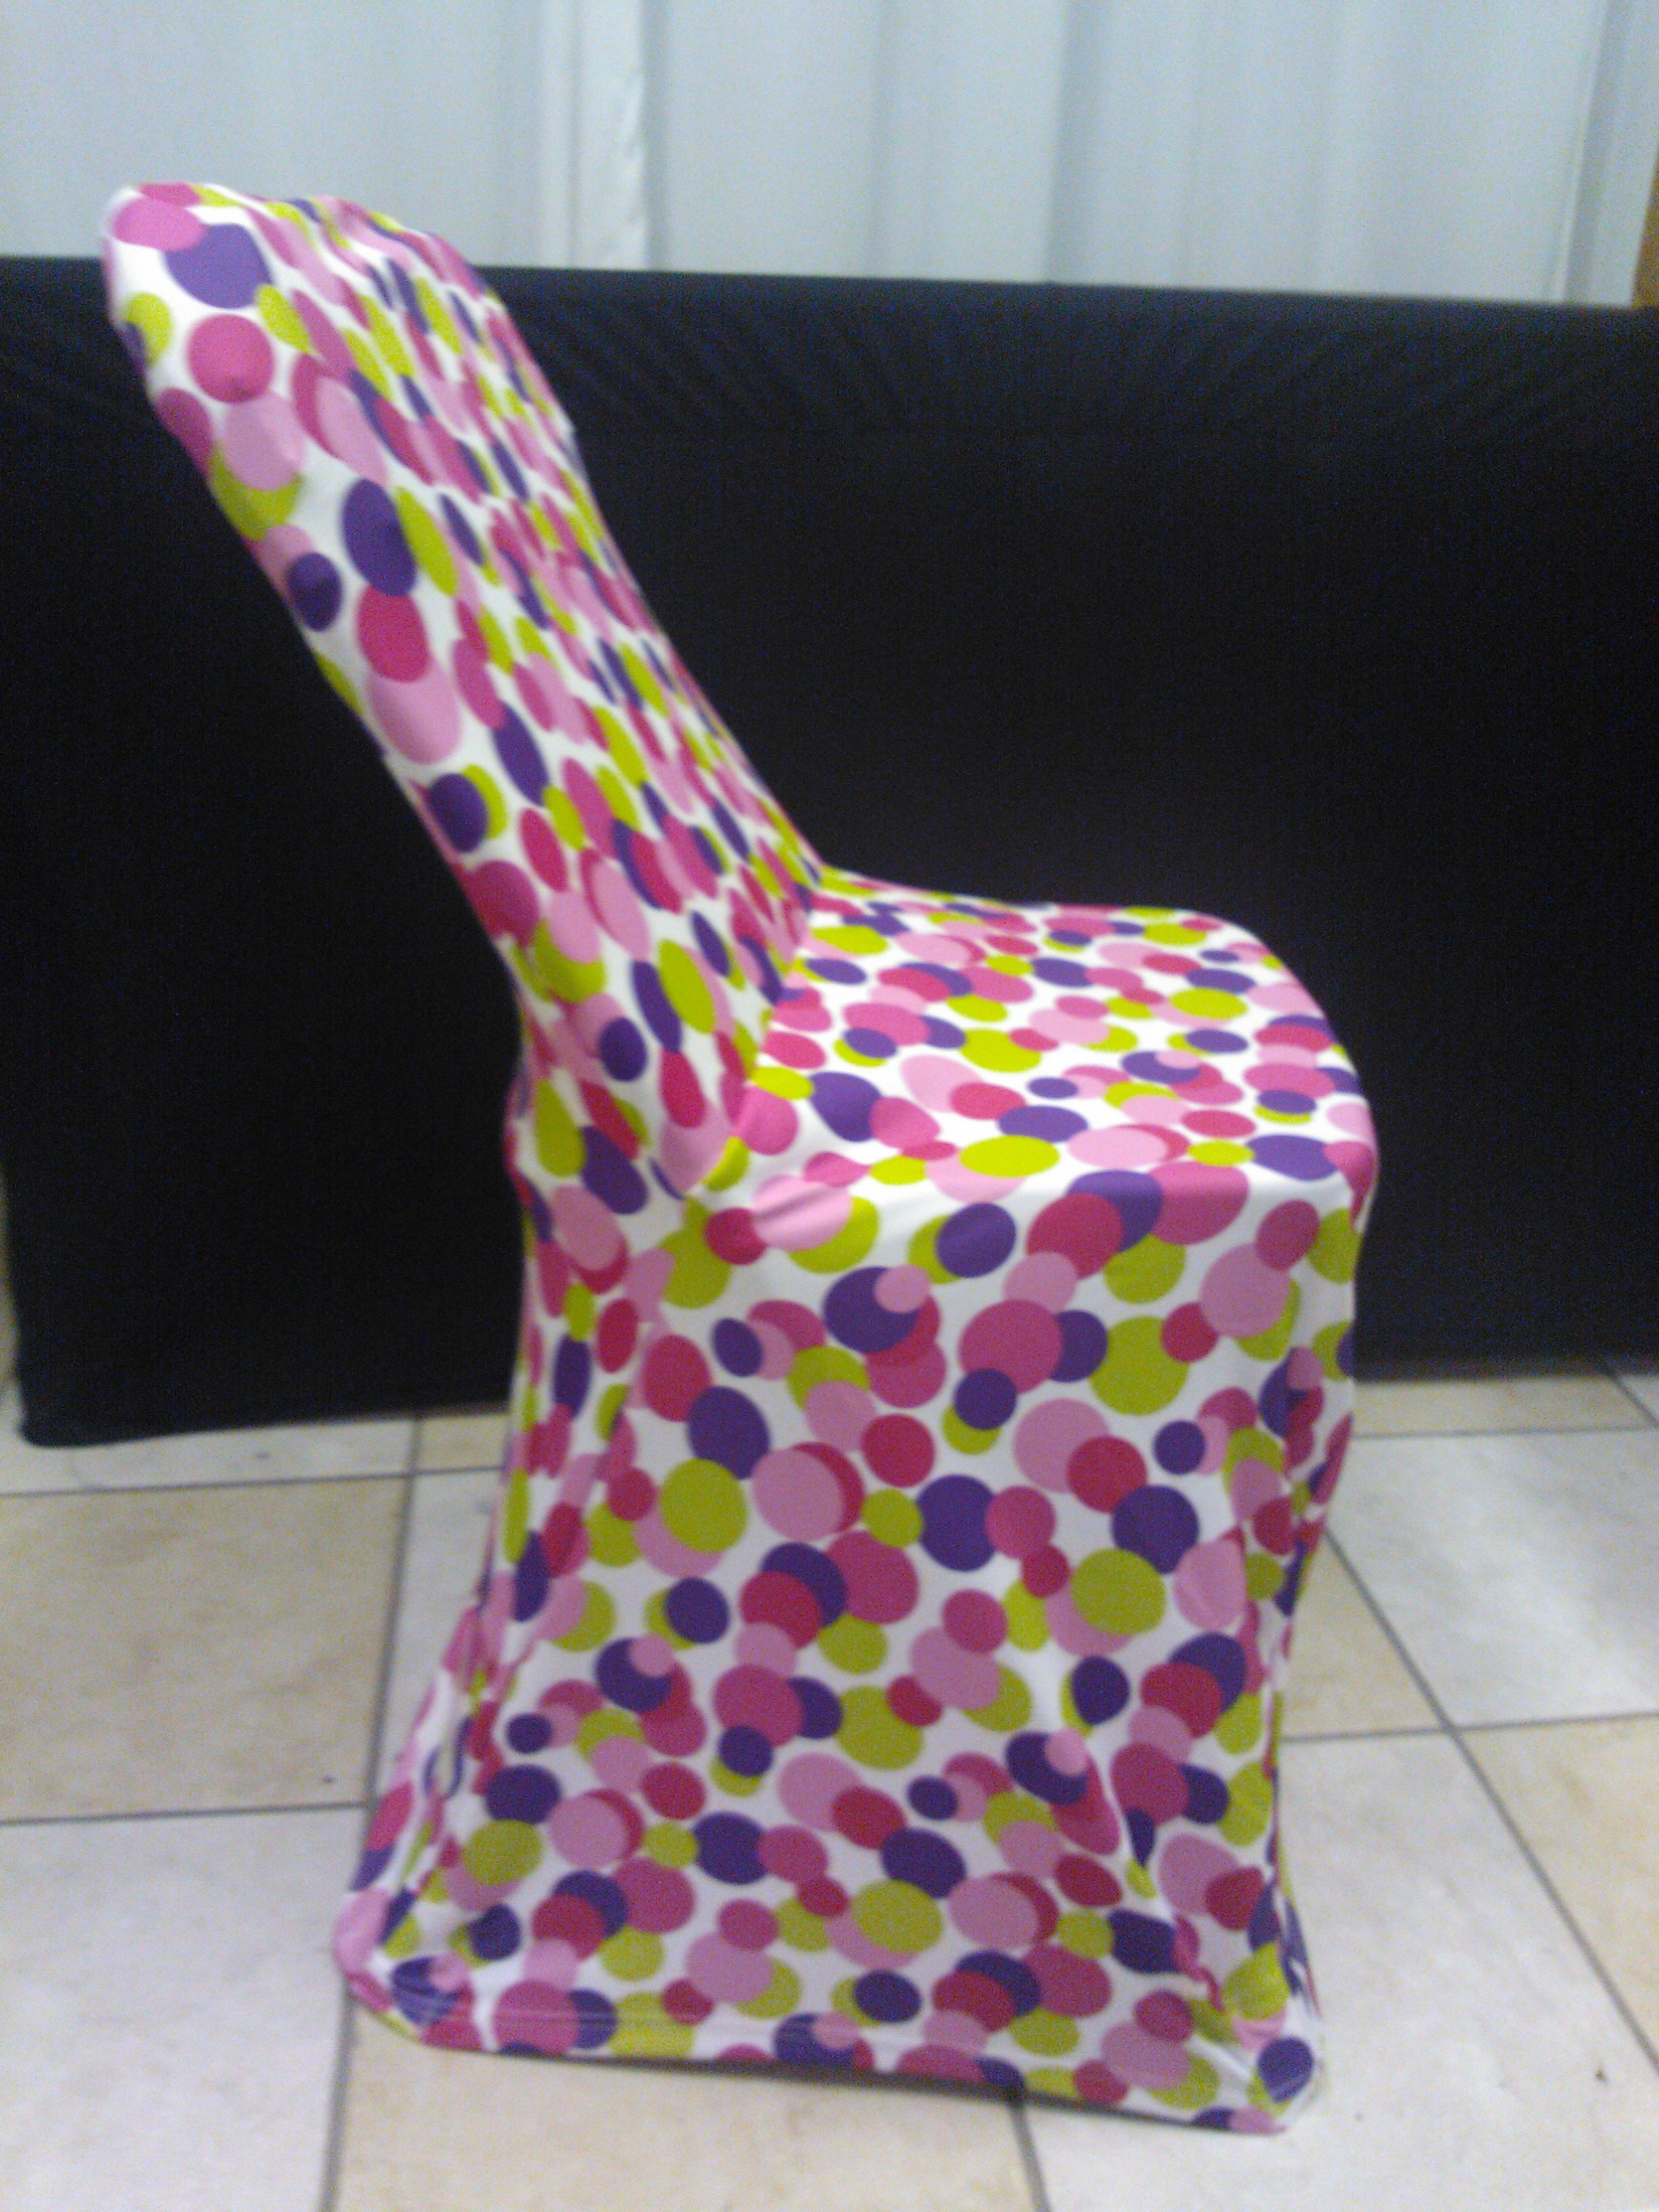 Light Pink Spandex Chair Covers Walmart.com Folding Cover In Fun Dots